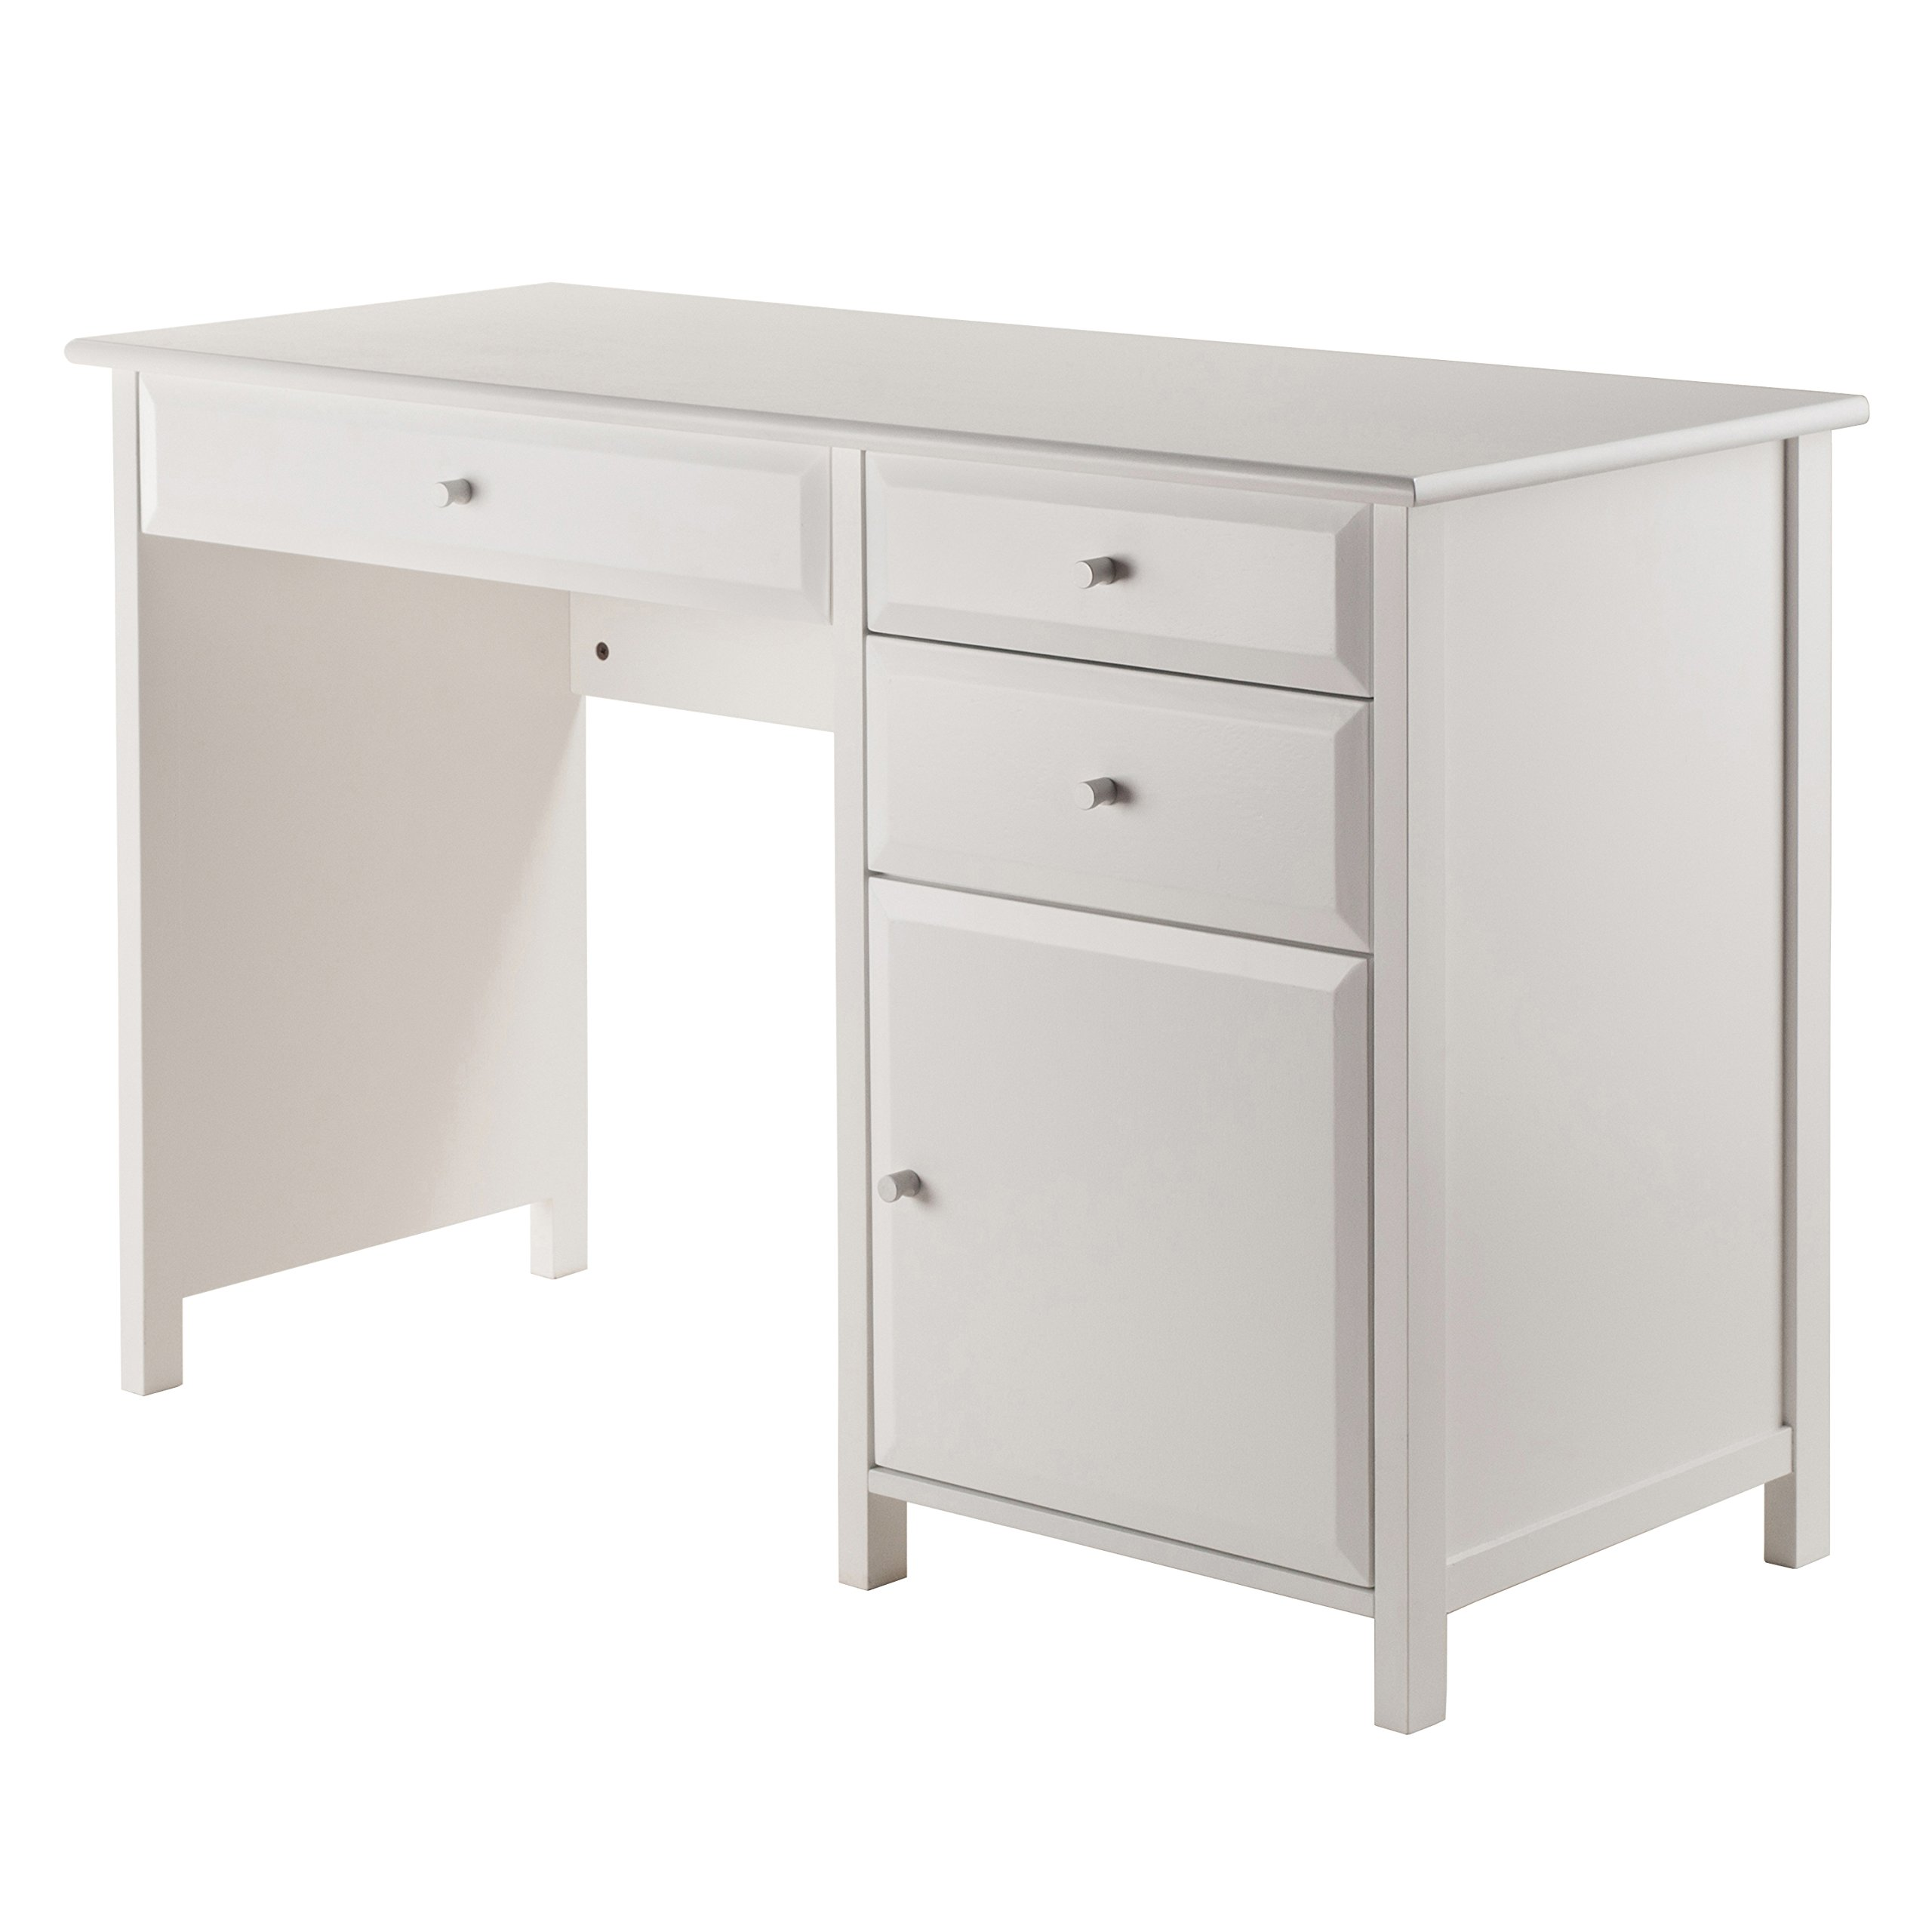 Winsome Wood 10147-WW Delta Home Office White by Winsome Wood